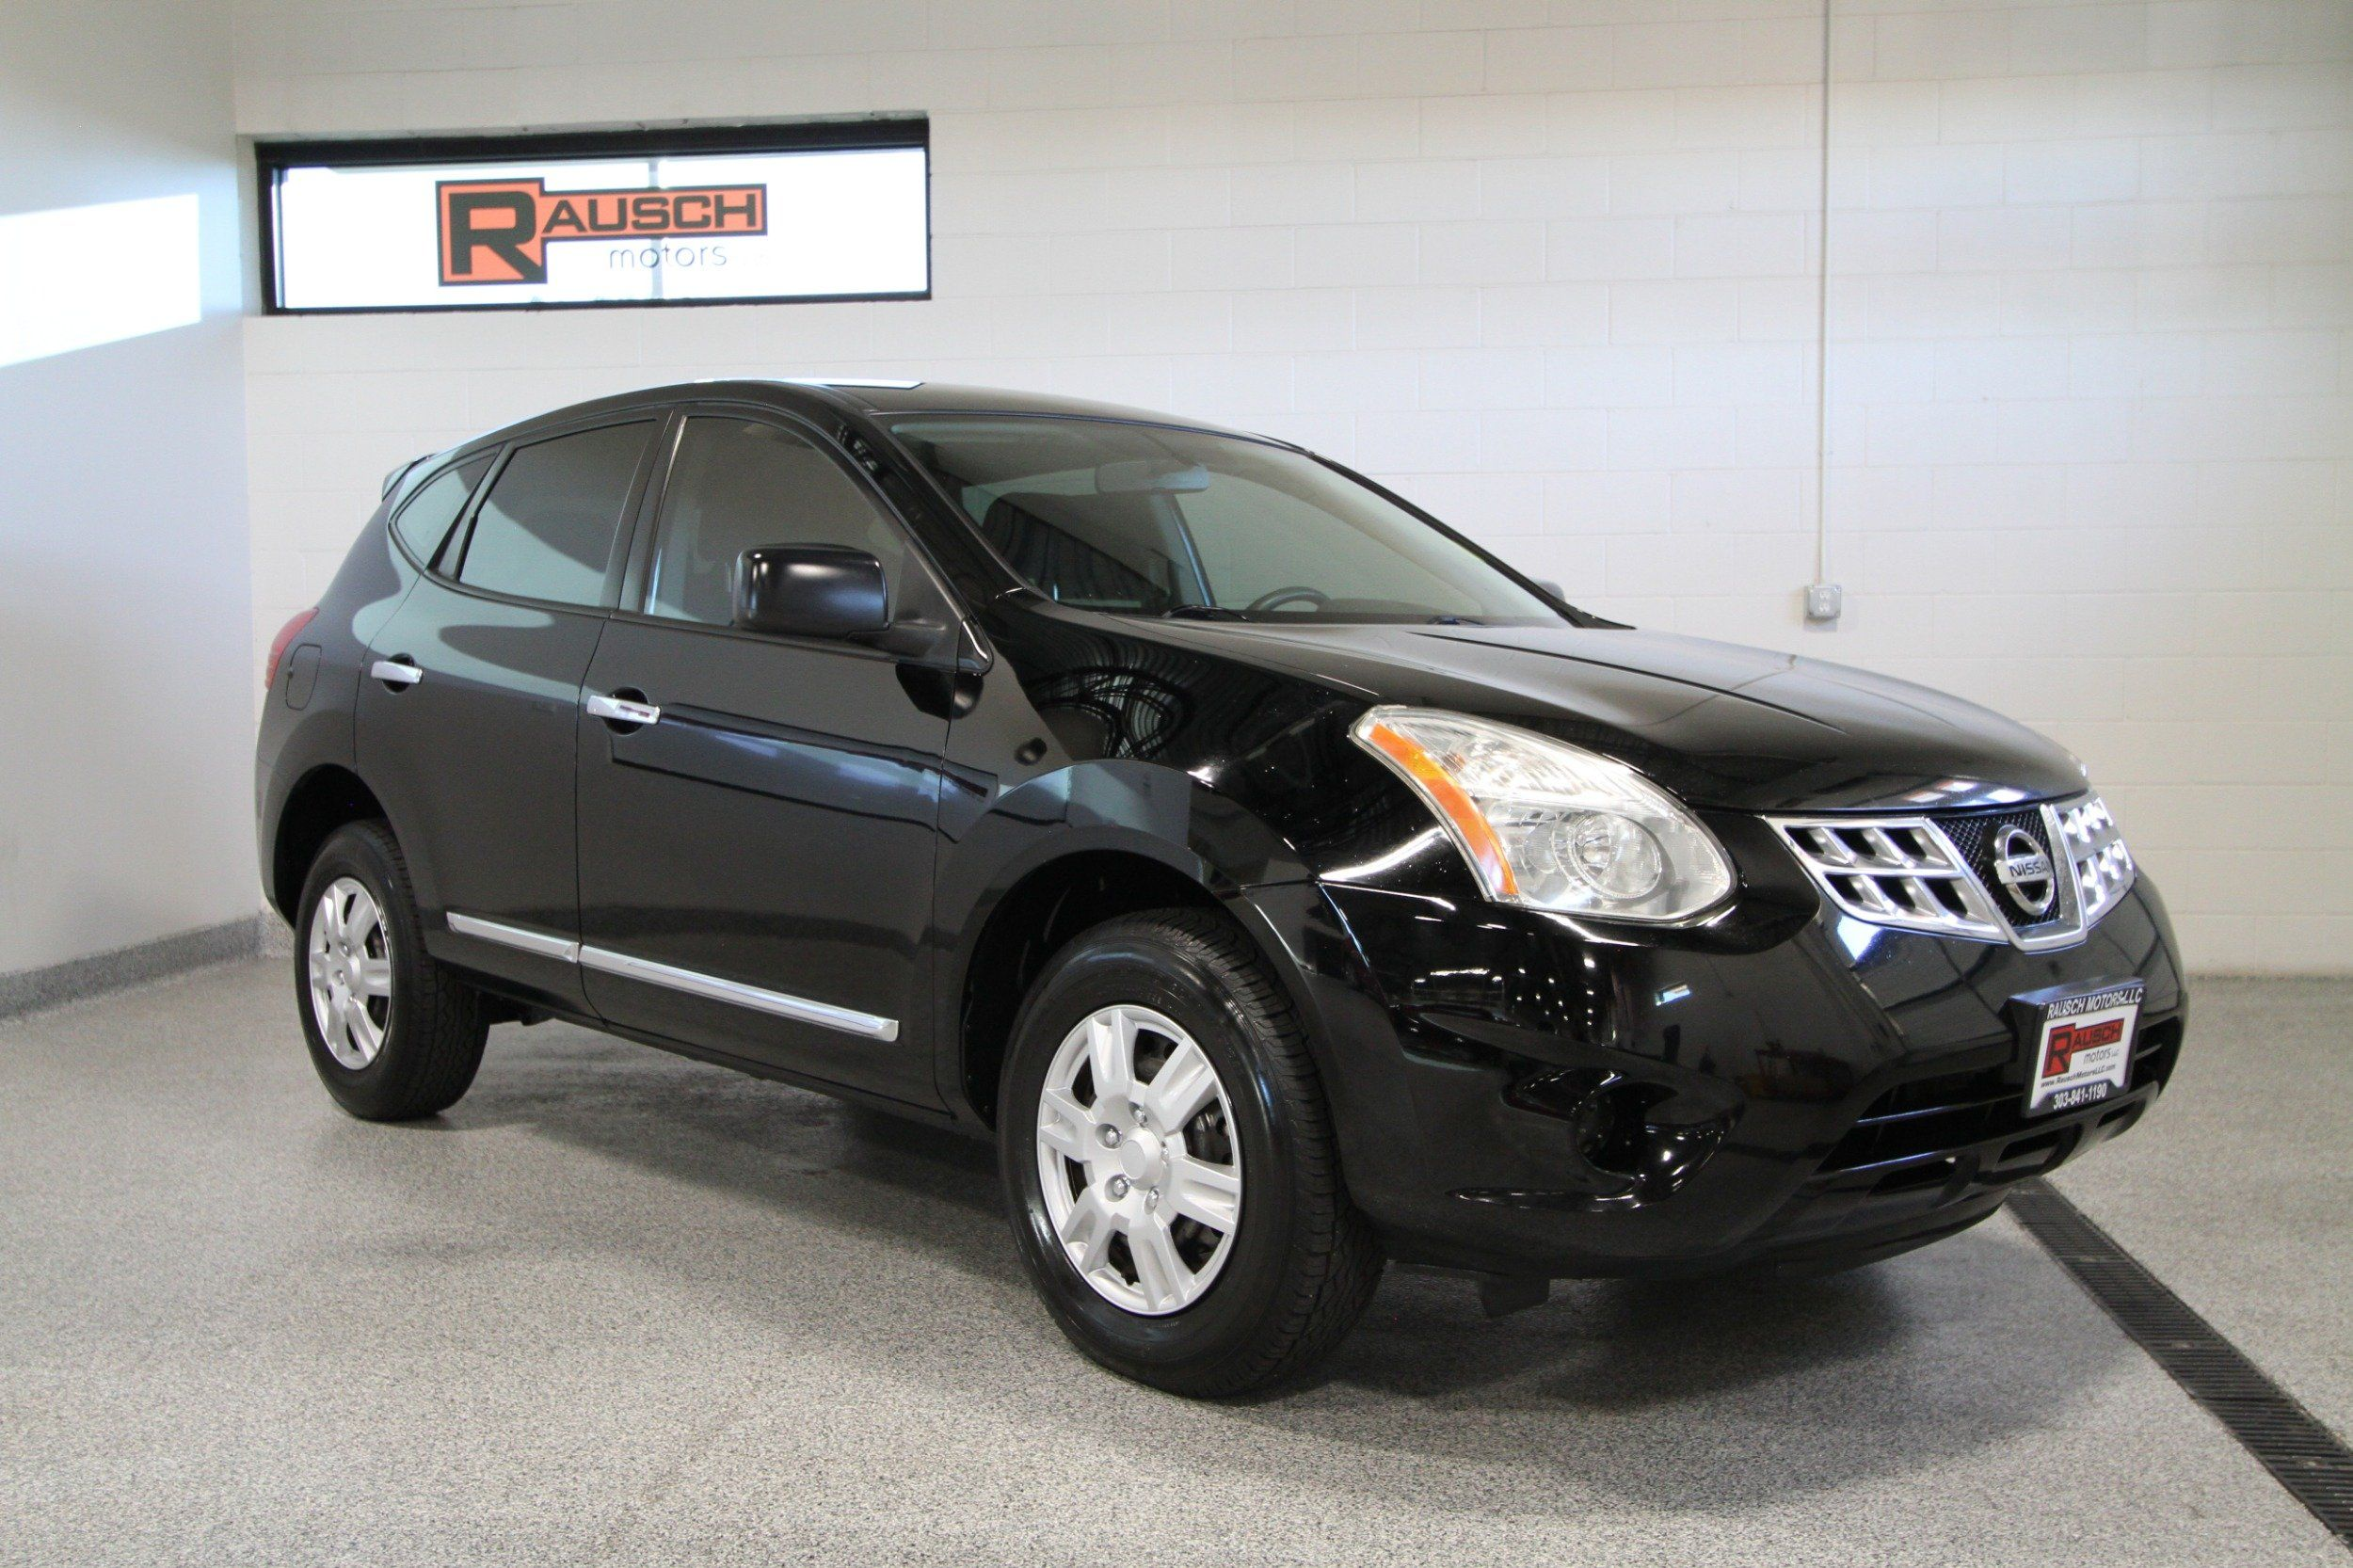 2013 Nissan Rogue S AWD. S AWD Automatic CLEAN! Market Price Advantage!